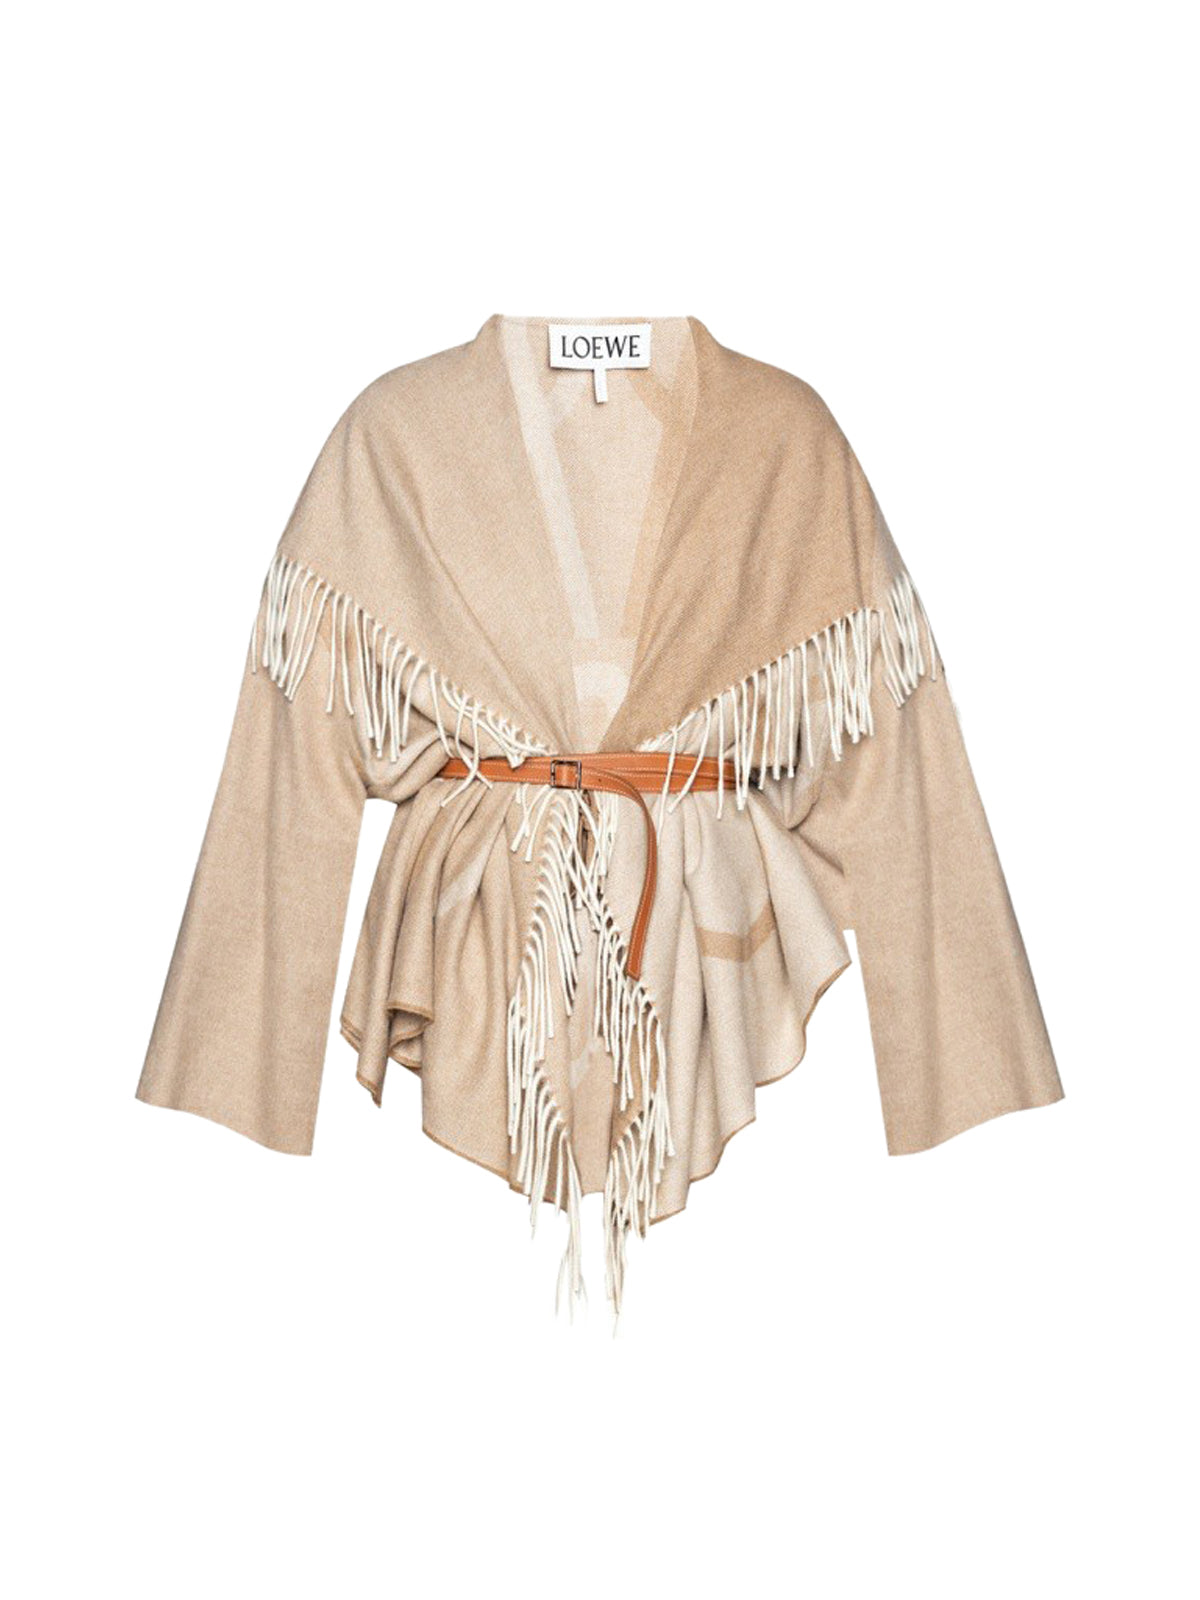 Anagram jacquard blanket shawl jacket in wool and cashmere